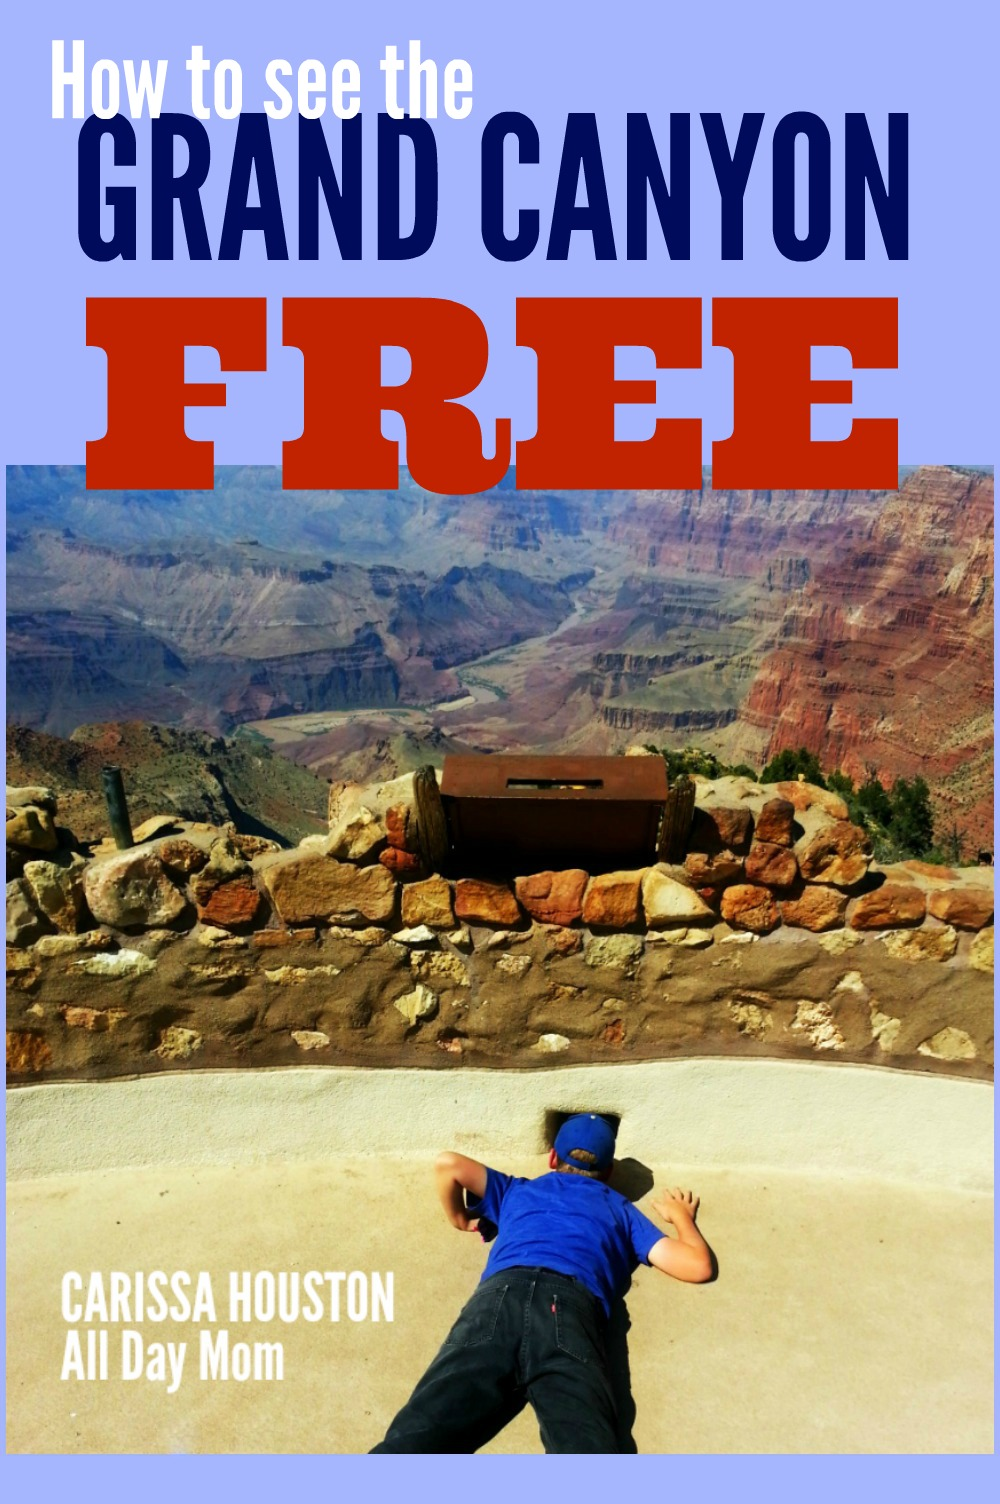 How to see the Grand Canyon for FREE! Arizona National Parks free days in 2016! Free entrance to National Parks and National Monuments complete list for AZ!